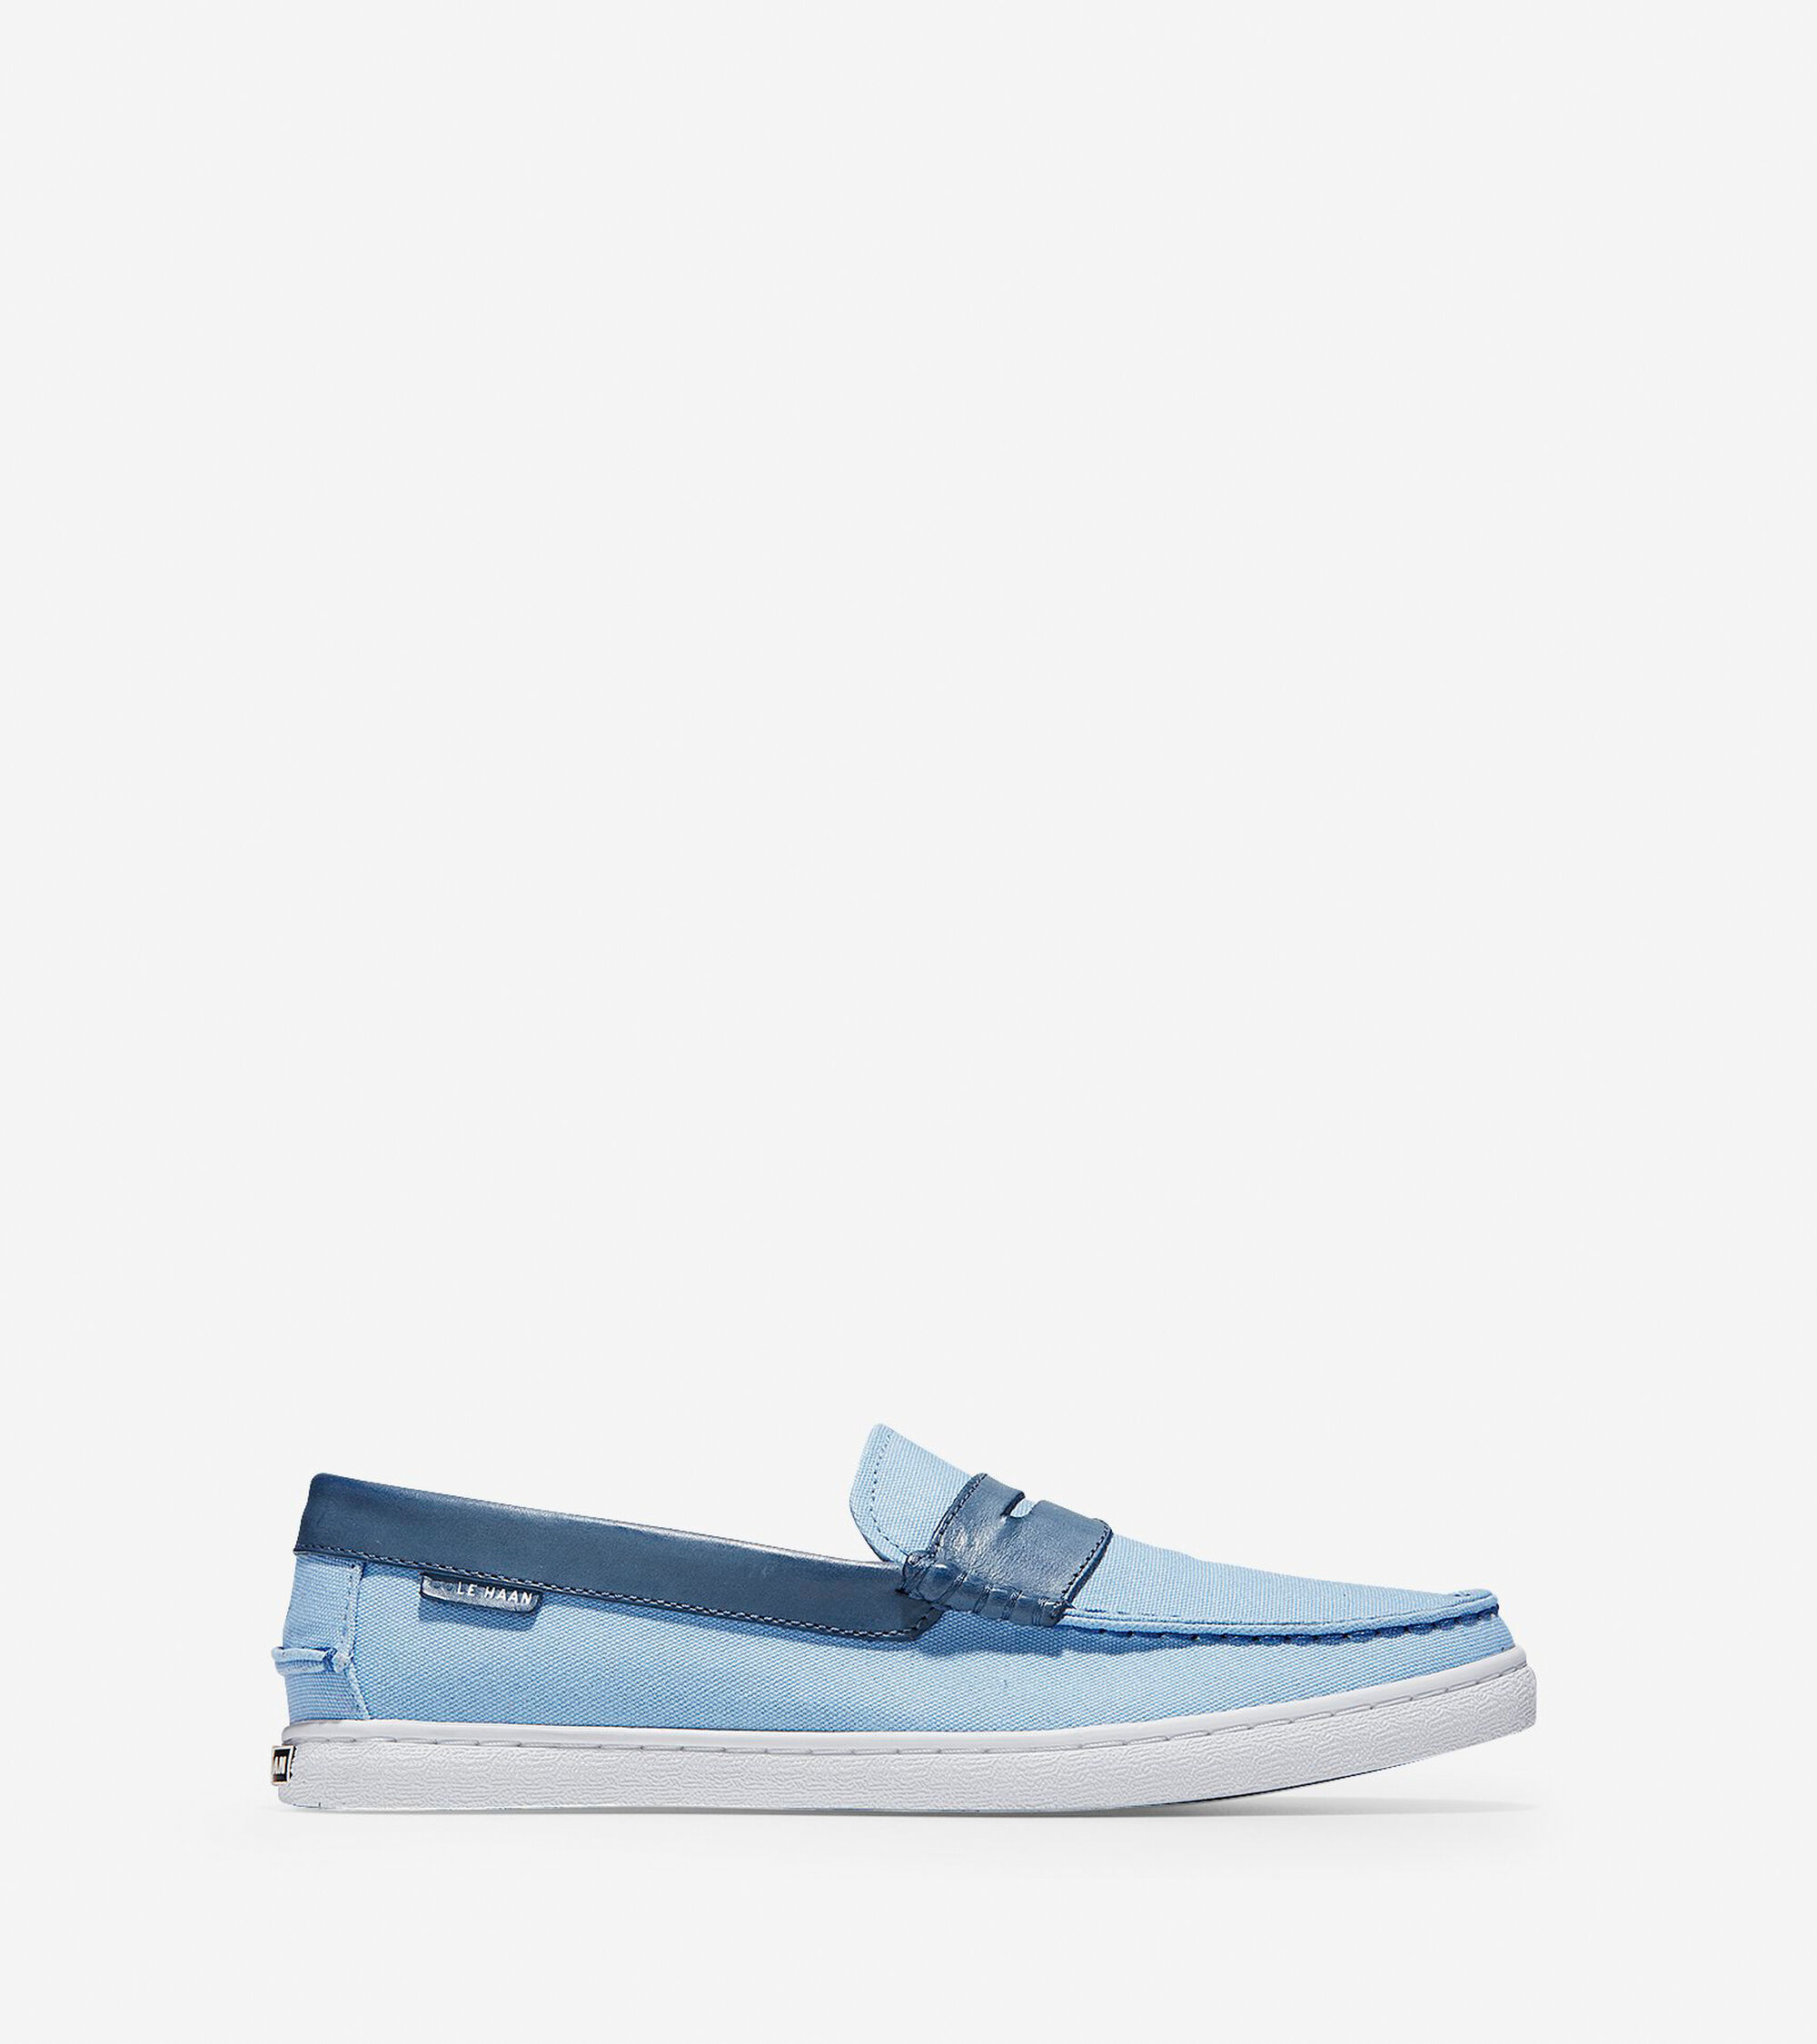 935a4b921a0 Men s Nantucket Loafers in Chambray Blue Canvas